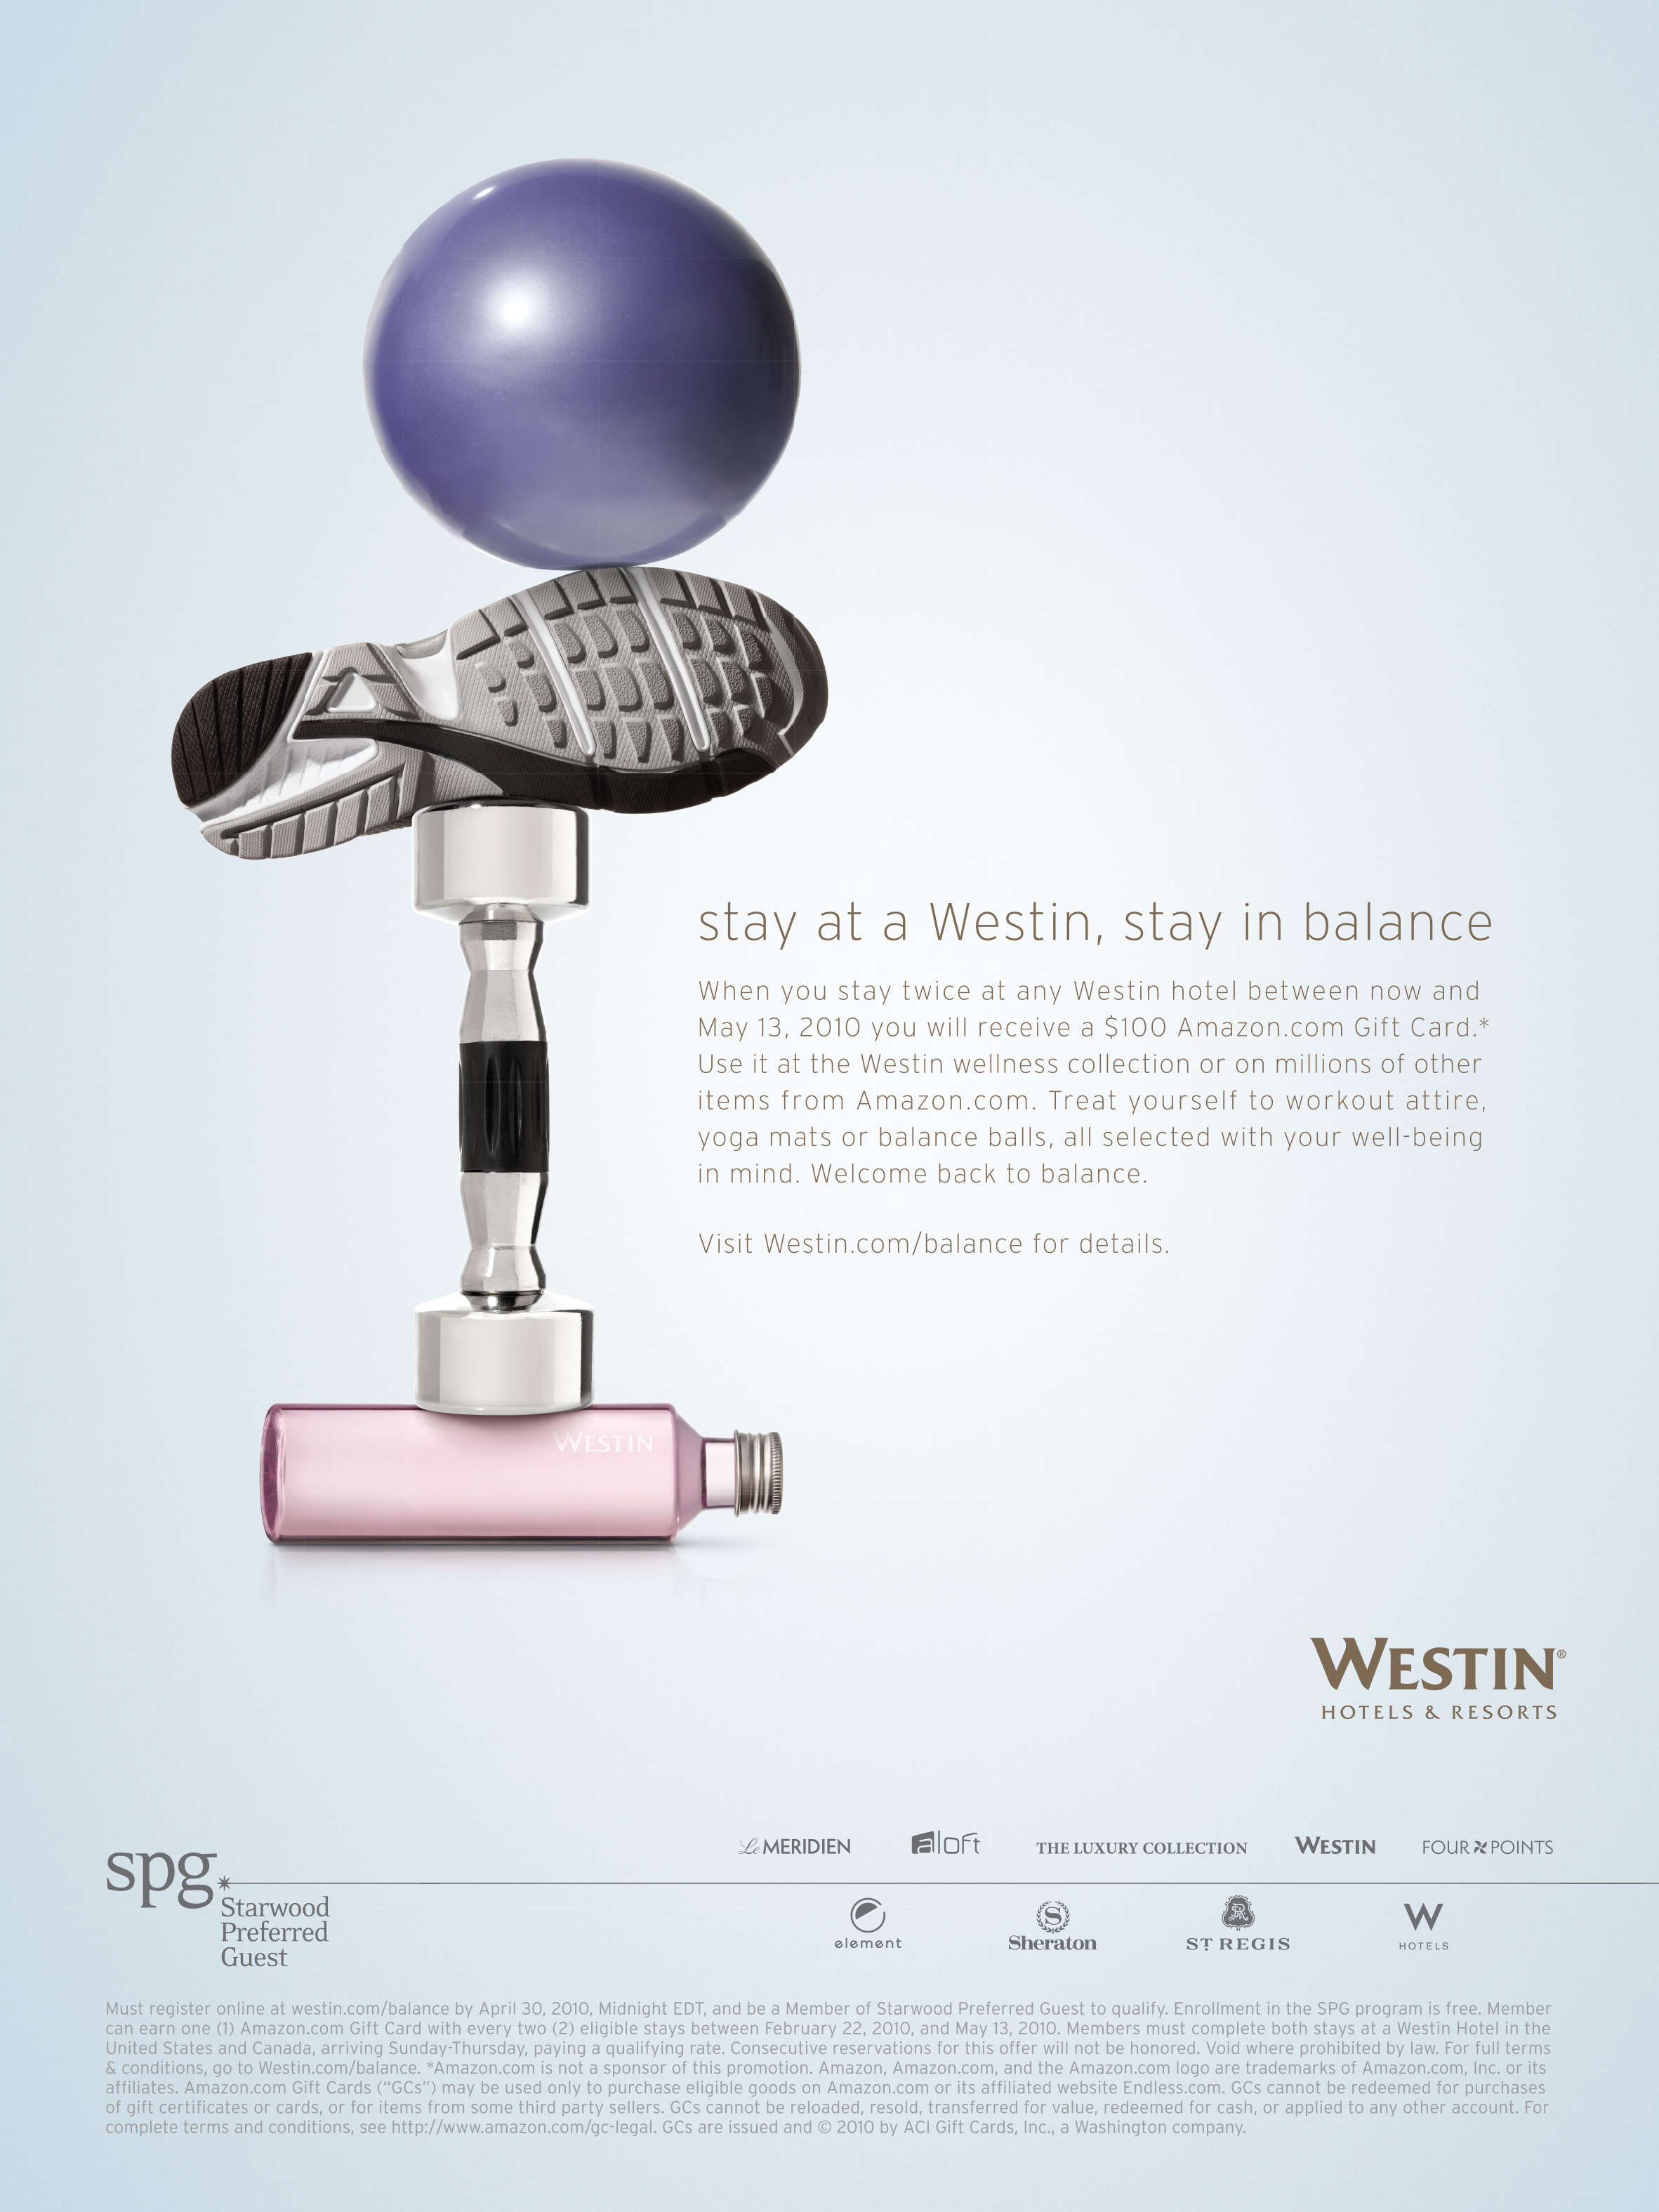 Starwood - Westin Hotels & Resorts :: Balance